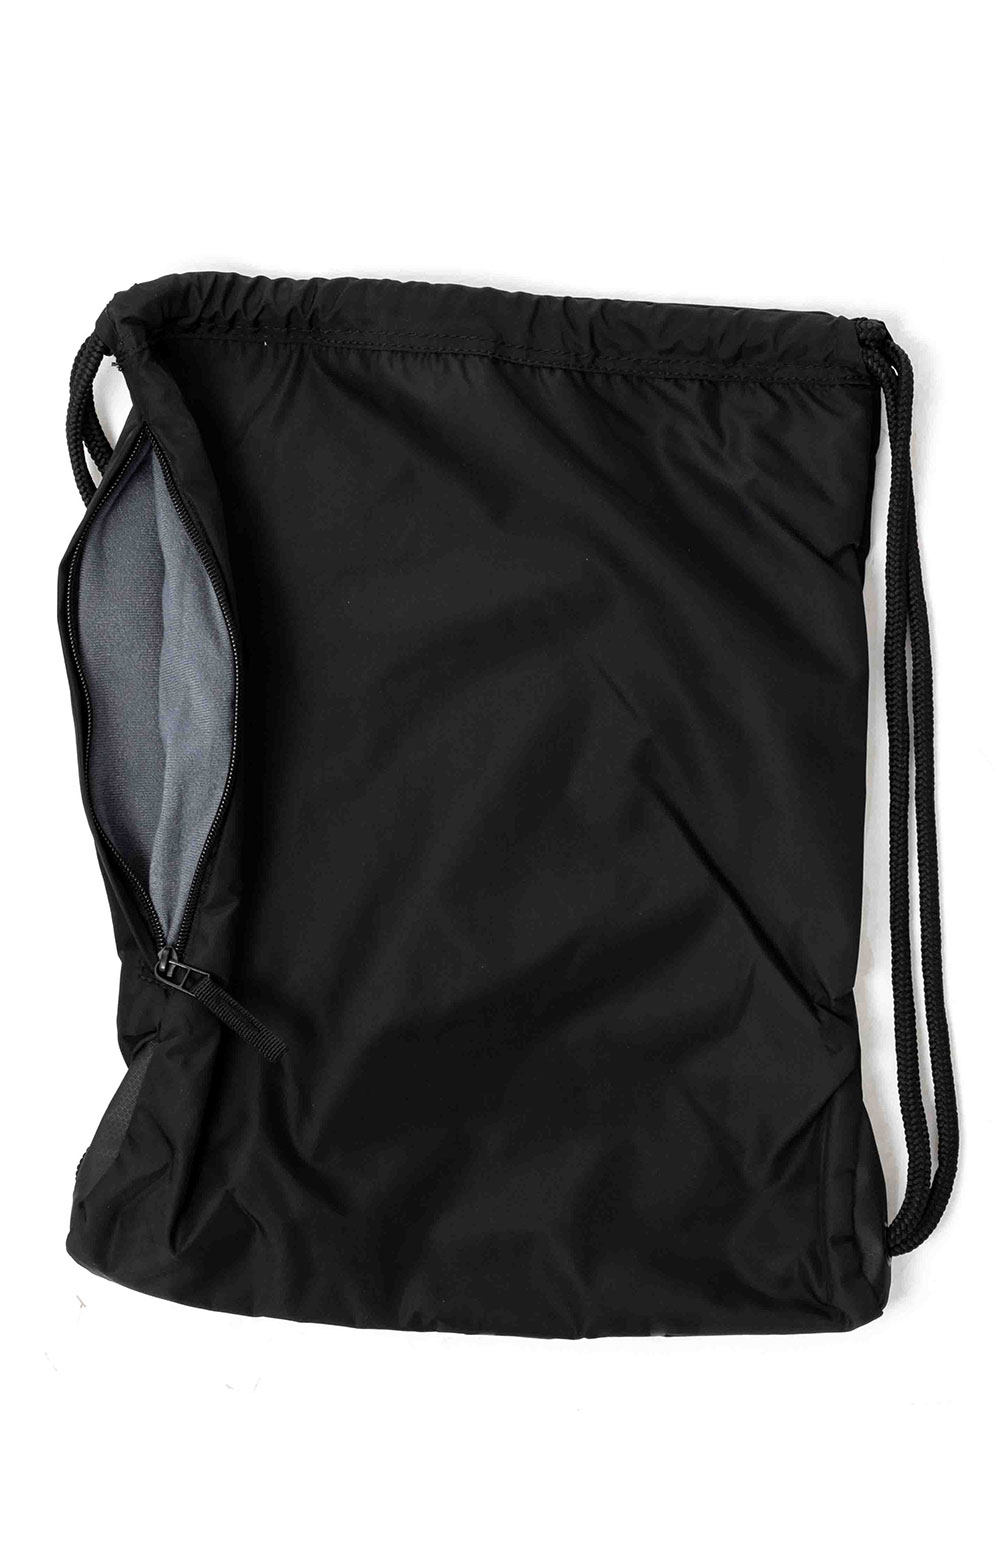 Originals Trefoil Sackpck - Black/White 2